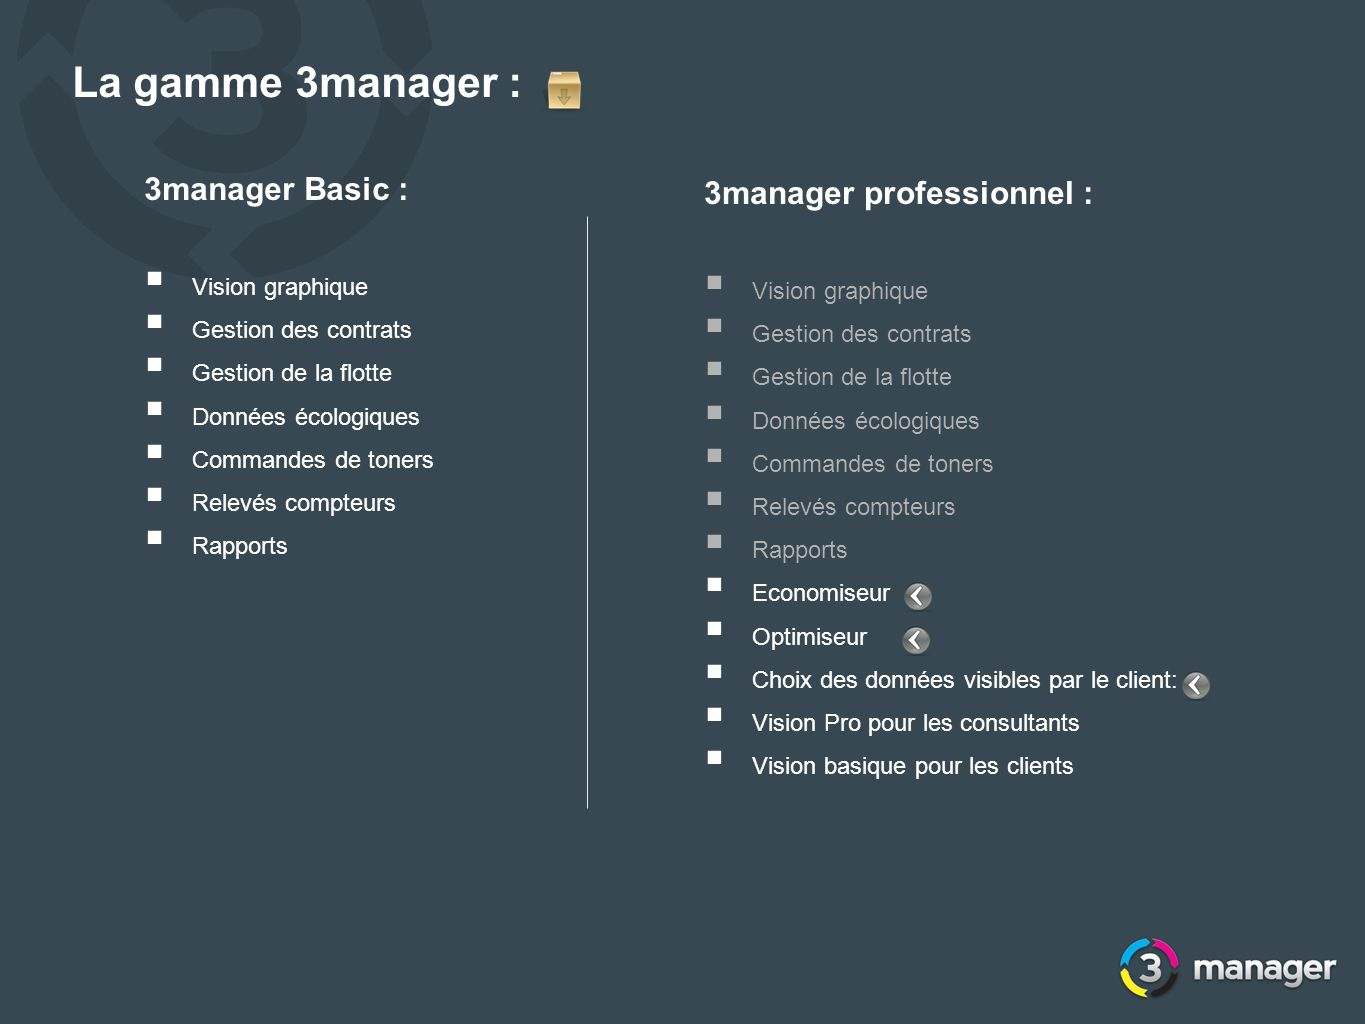 La gamme 3manager : 3manager Basic : 3manager professionnel :